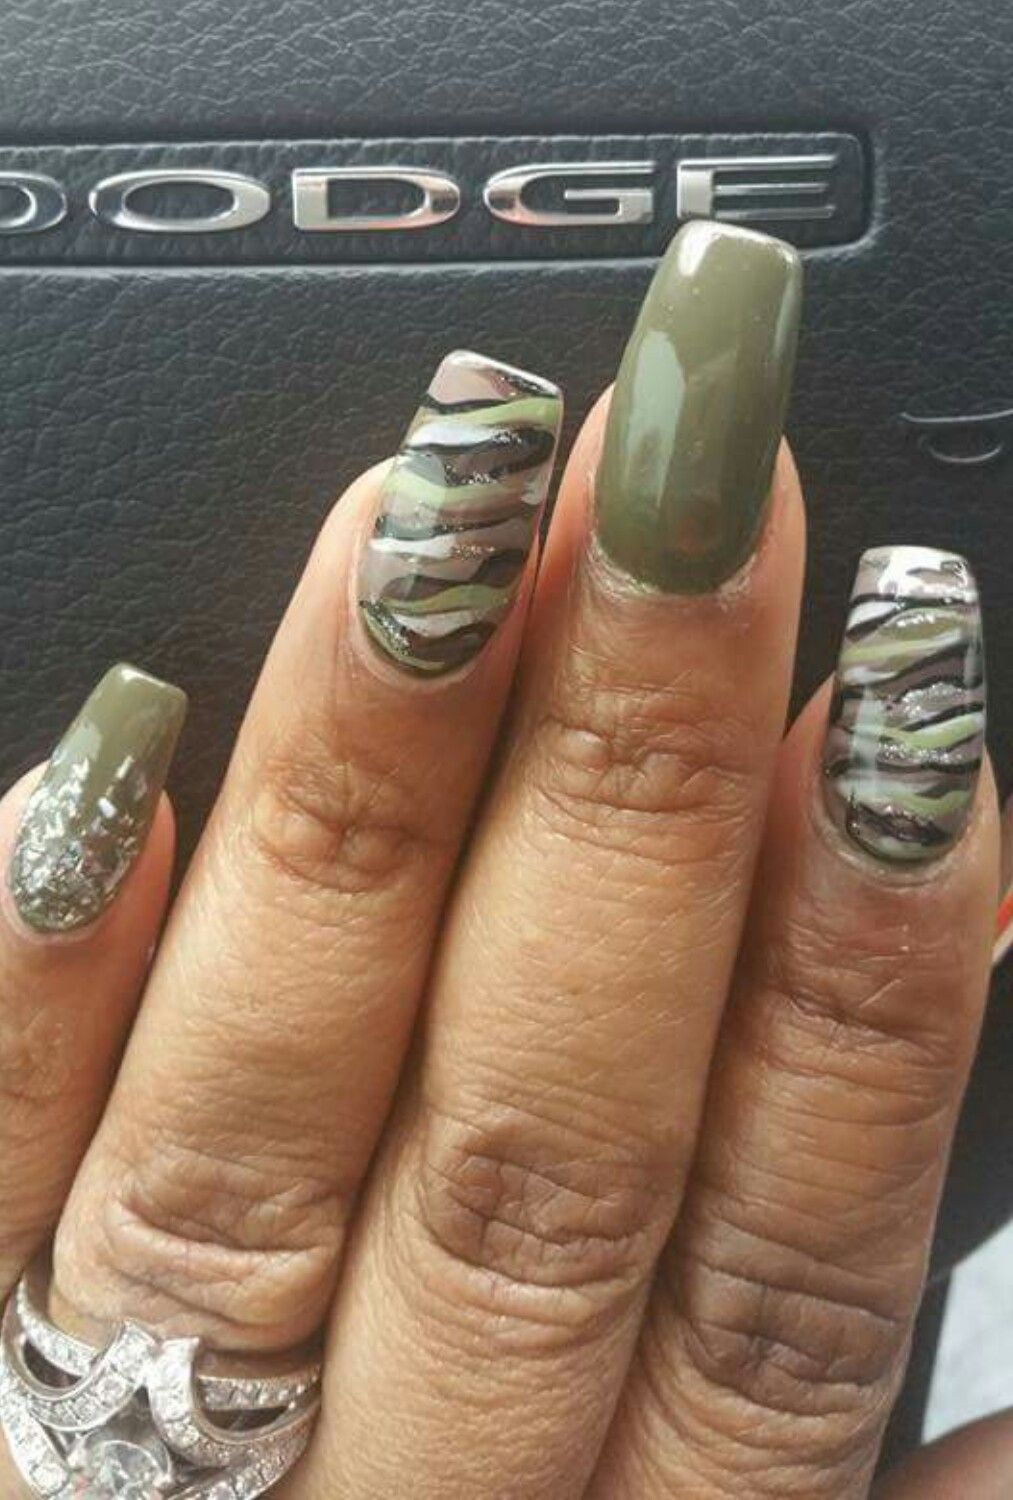 Camouflage nail design - Camouflage Nail Design Nails Pinterest Camouflage Nails